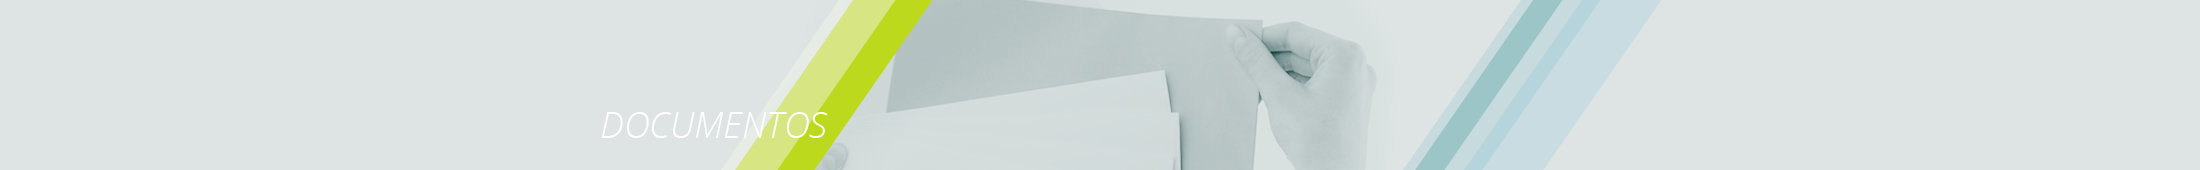 banners-1